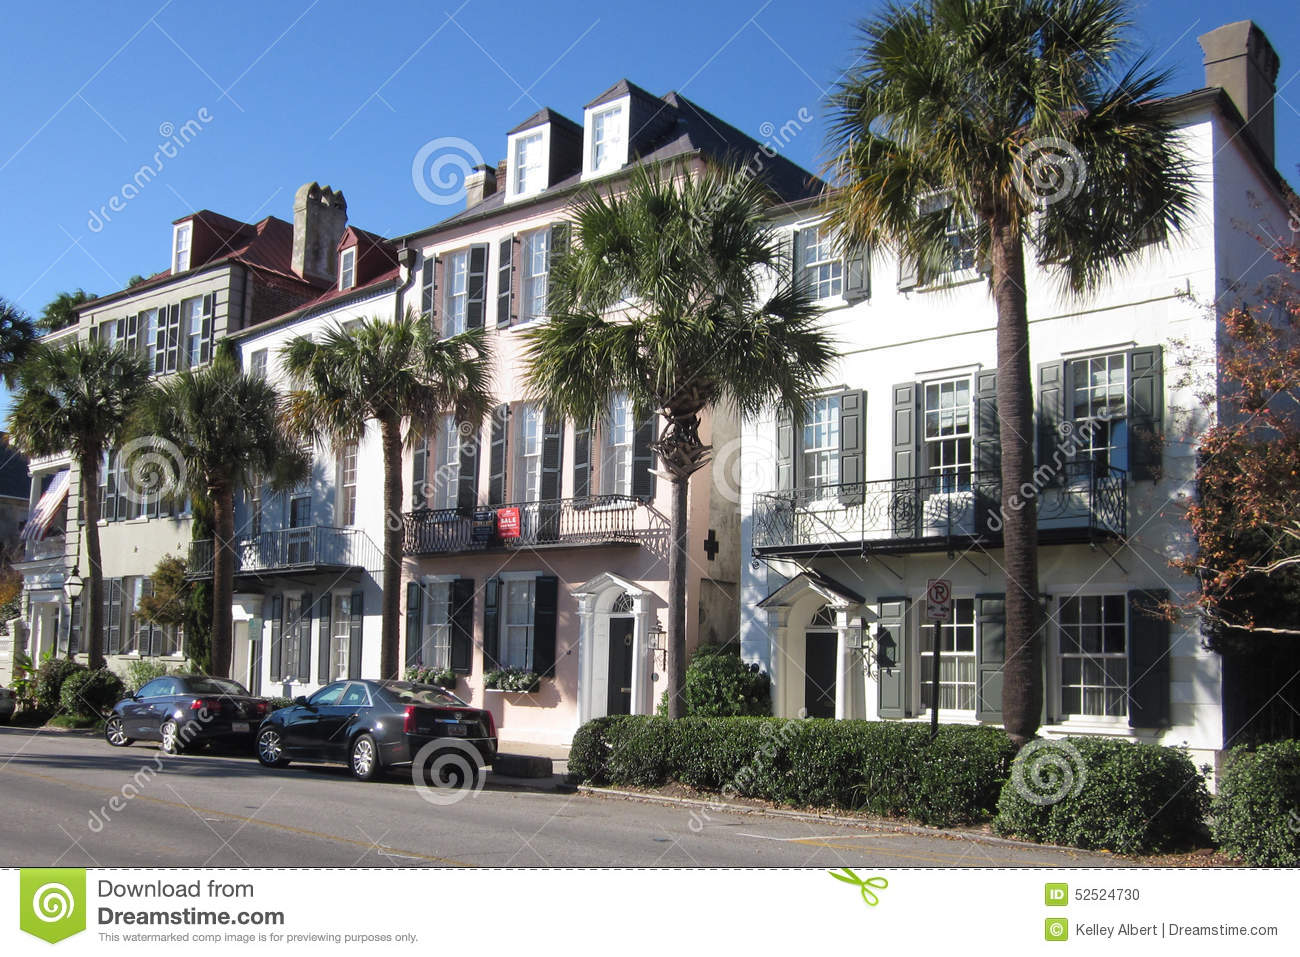 sc charleston battery houses with Stock Photo Street View Charleston South Carolina Homes Along Battery Row Historic Sc Image52524730 on South Carolina The Palmetto Tour Continued also Greenville North Carolina To Greenville South Carolina as well USI moreover Stock Photo Street View Charleston South Carolina Homes Along Battery Row Historic Sc Image52524730 in addition Limited Edition.